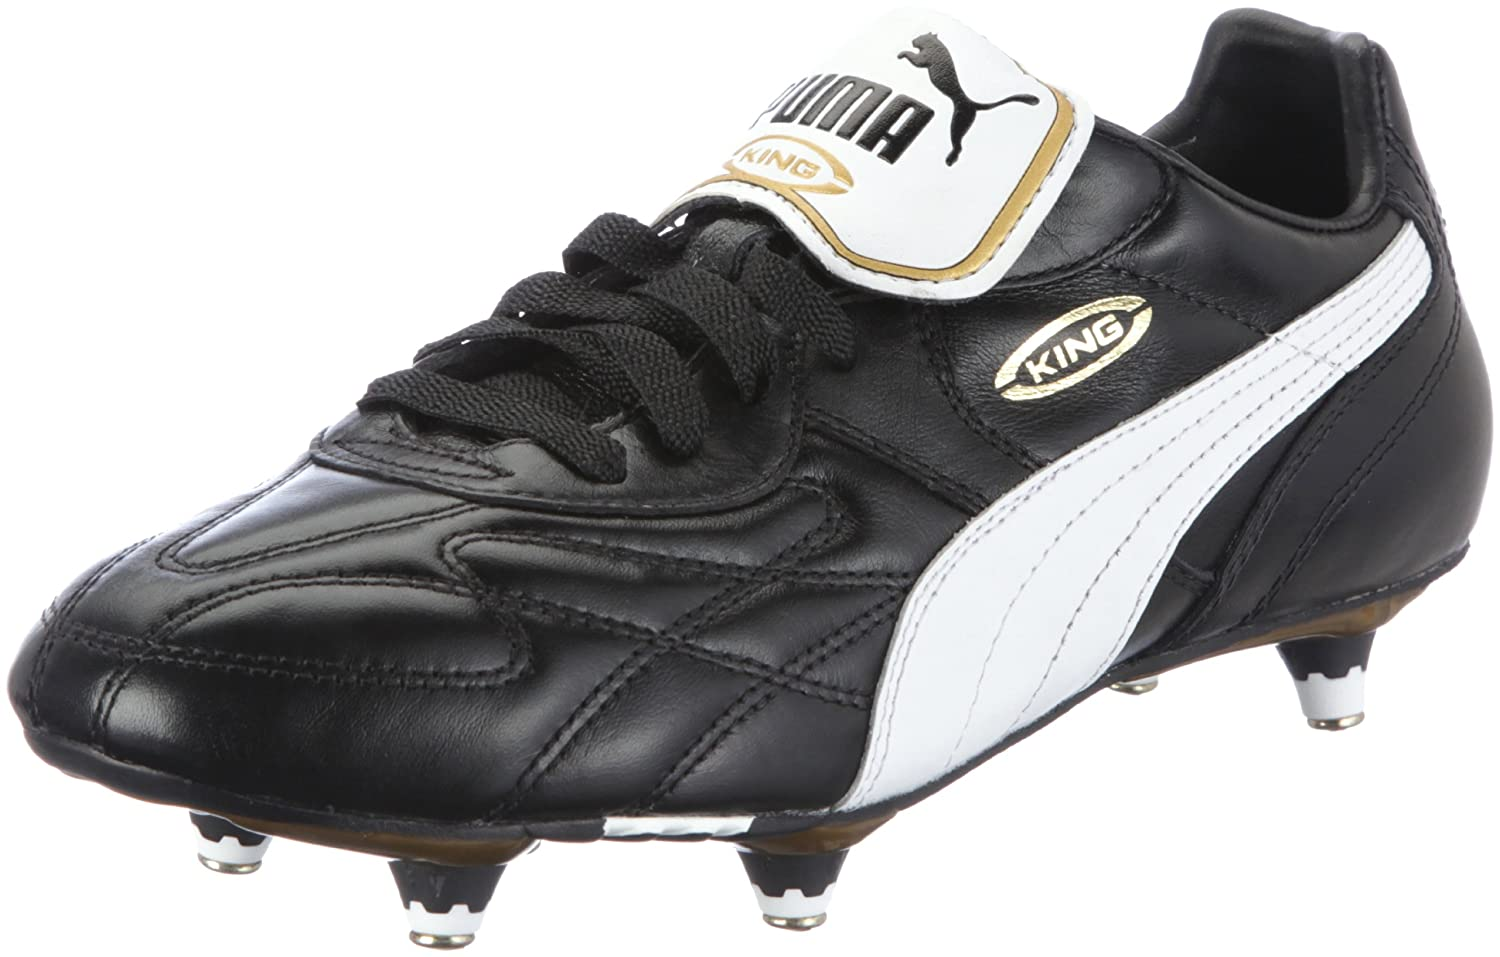 Puma King Pro SG Football Boots (Black-White-Gold) B000G529C6 UK Size 7|Black Black UK Size 7